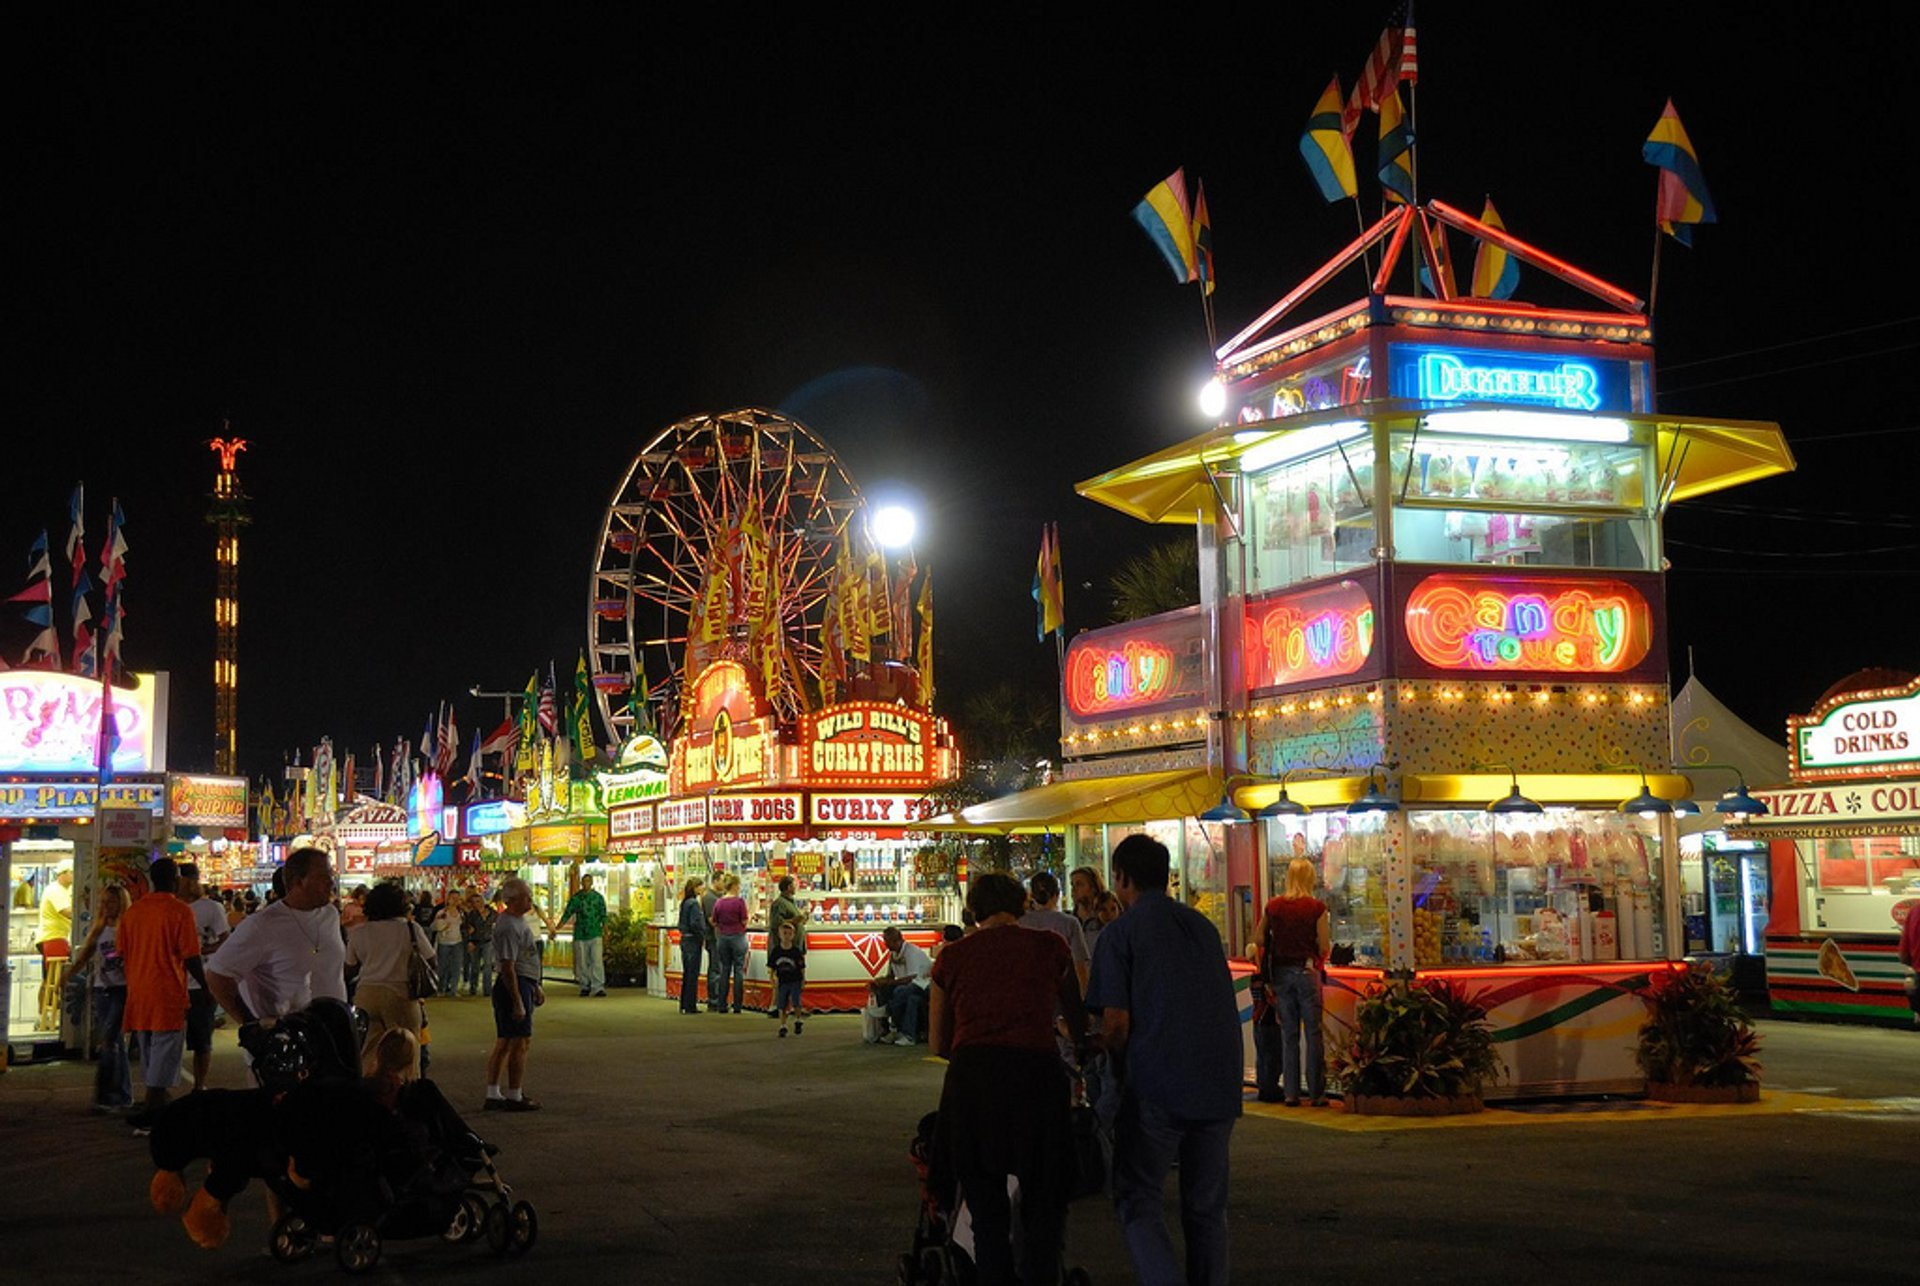 South Florida Fair in Florida - Best Season